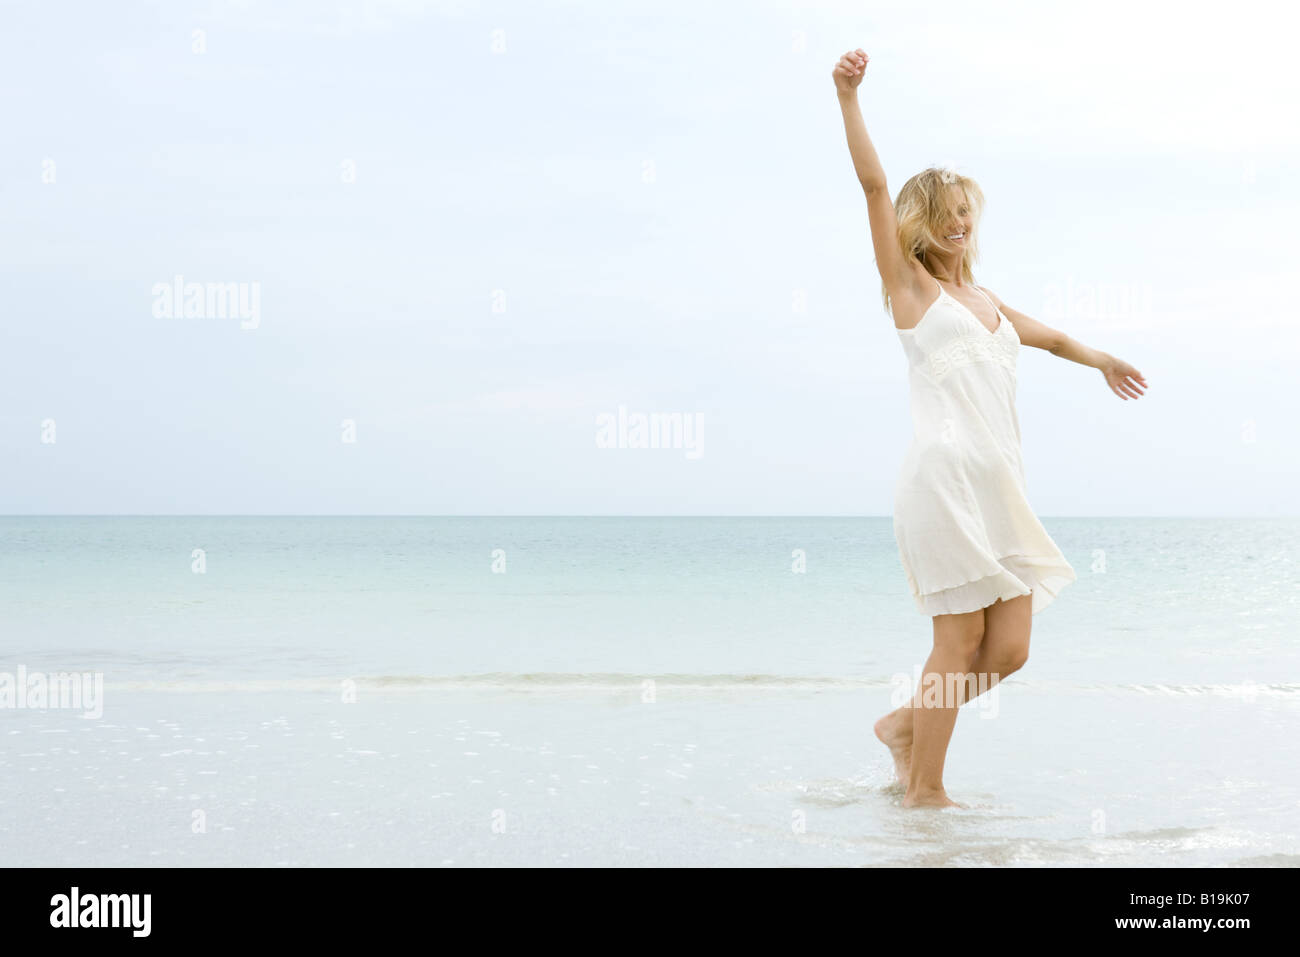 Woman walking at the beach, arms raised, hair tousled by wind - Stock Image